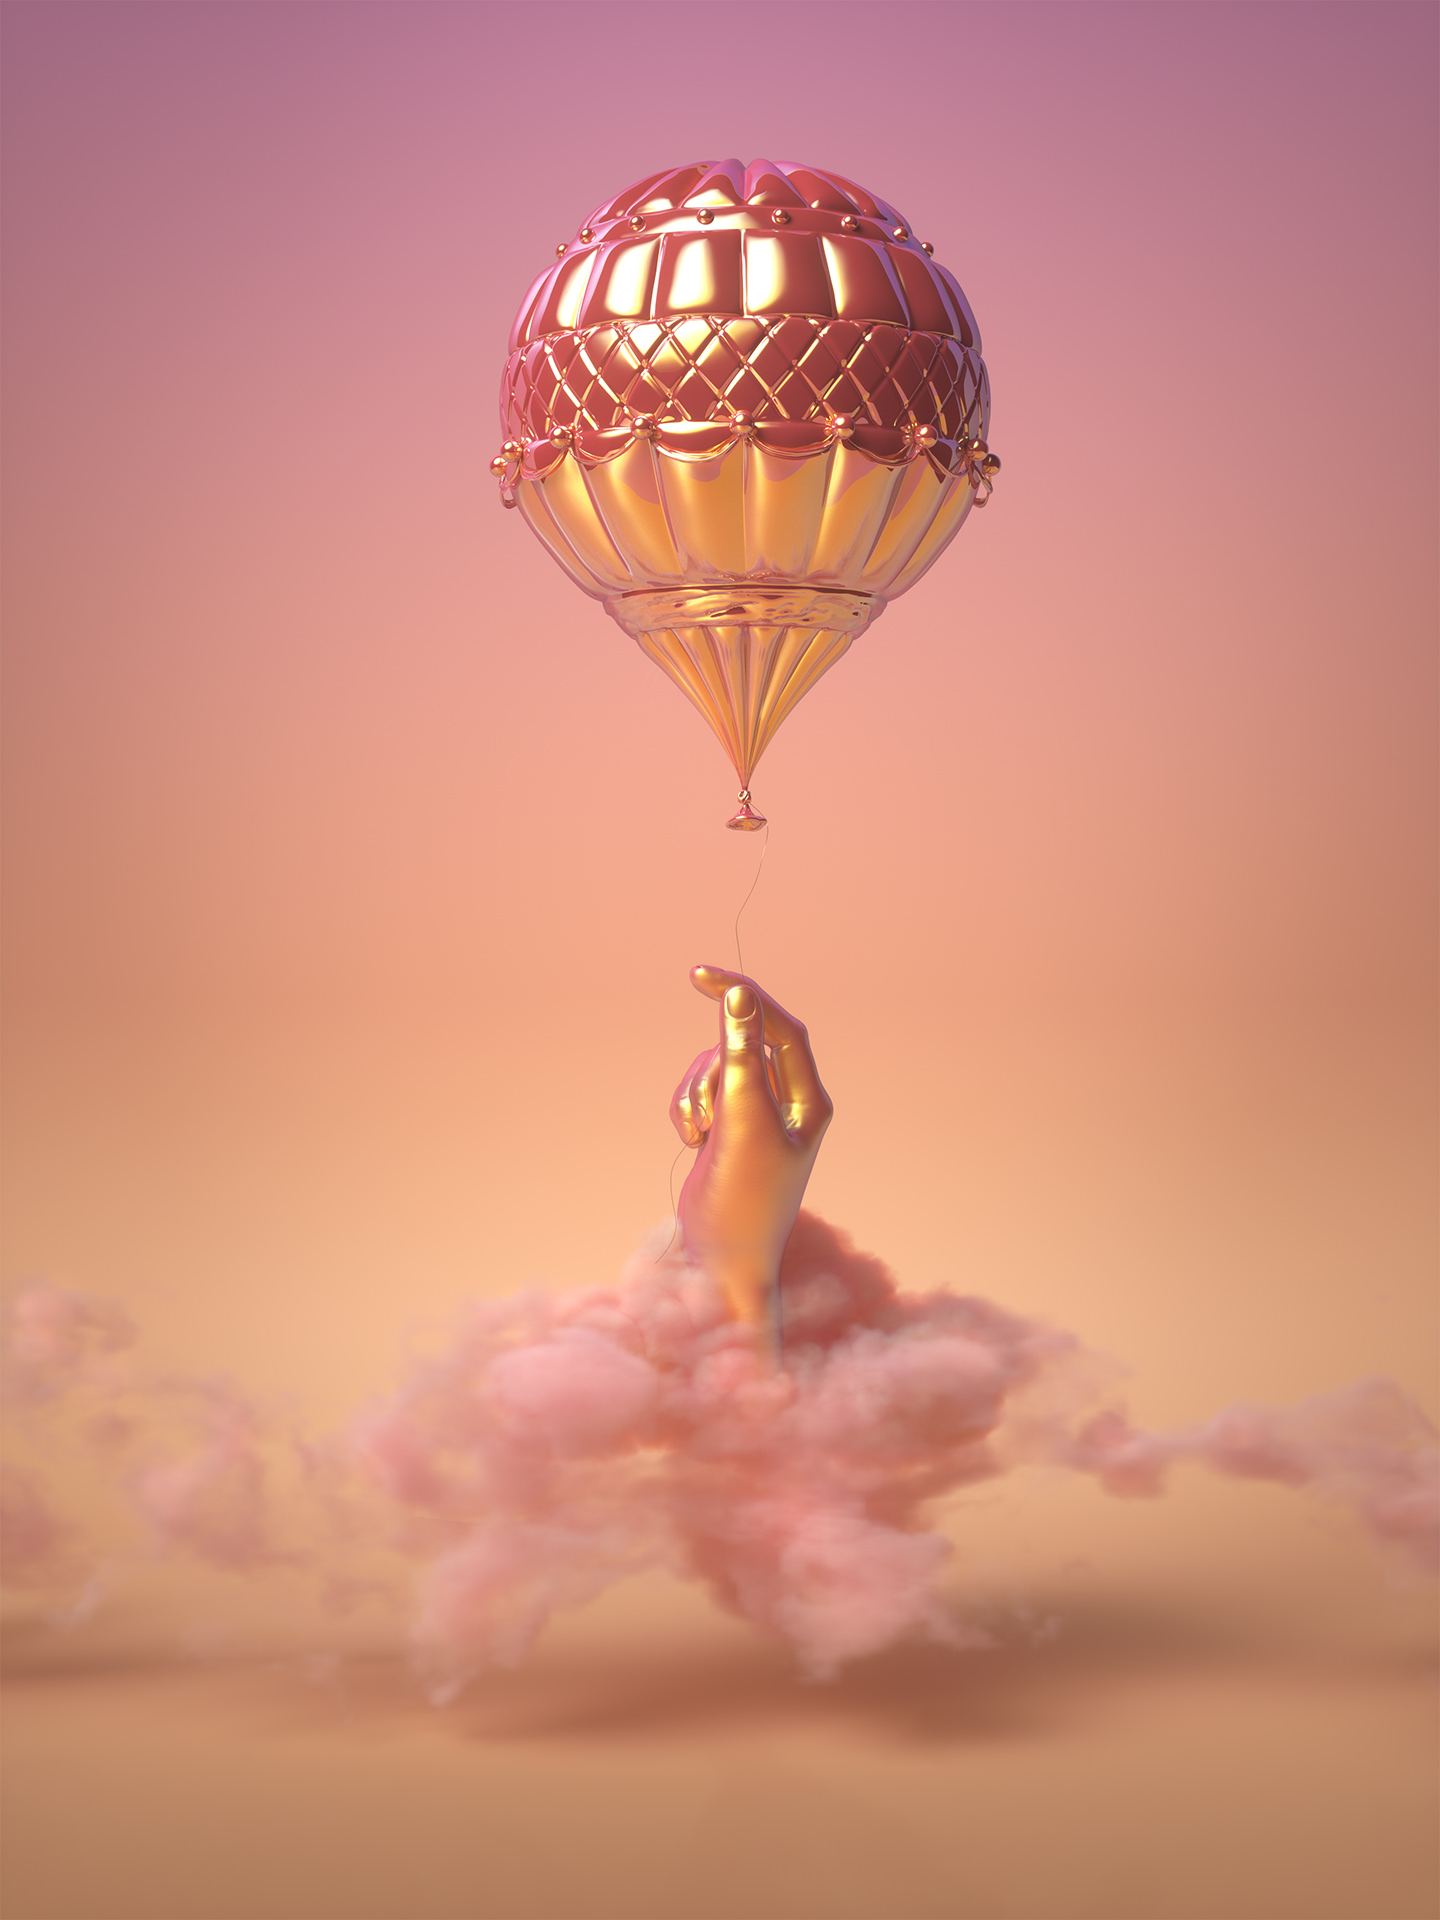 Heavy Thoughts 3D CGI Illustration